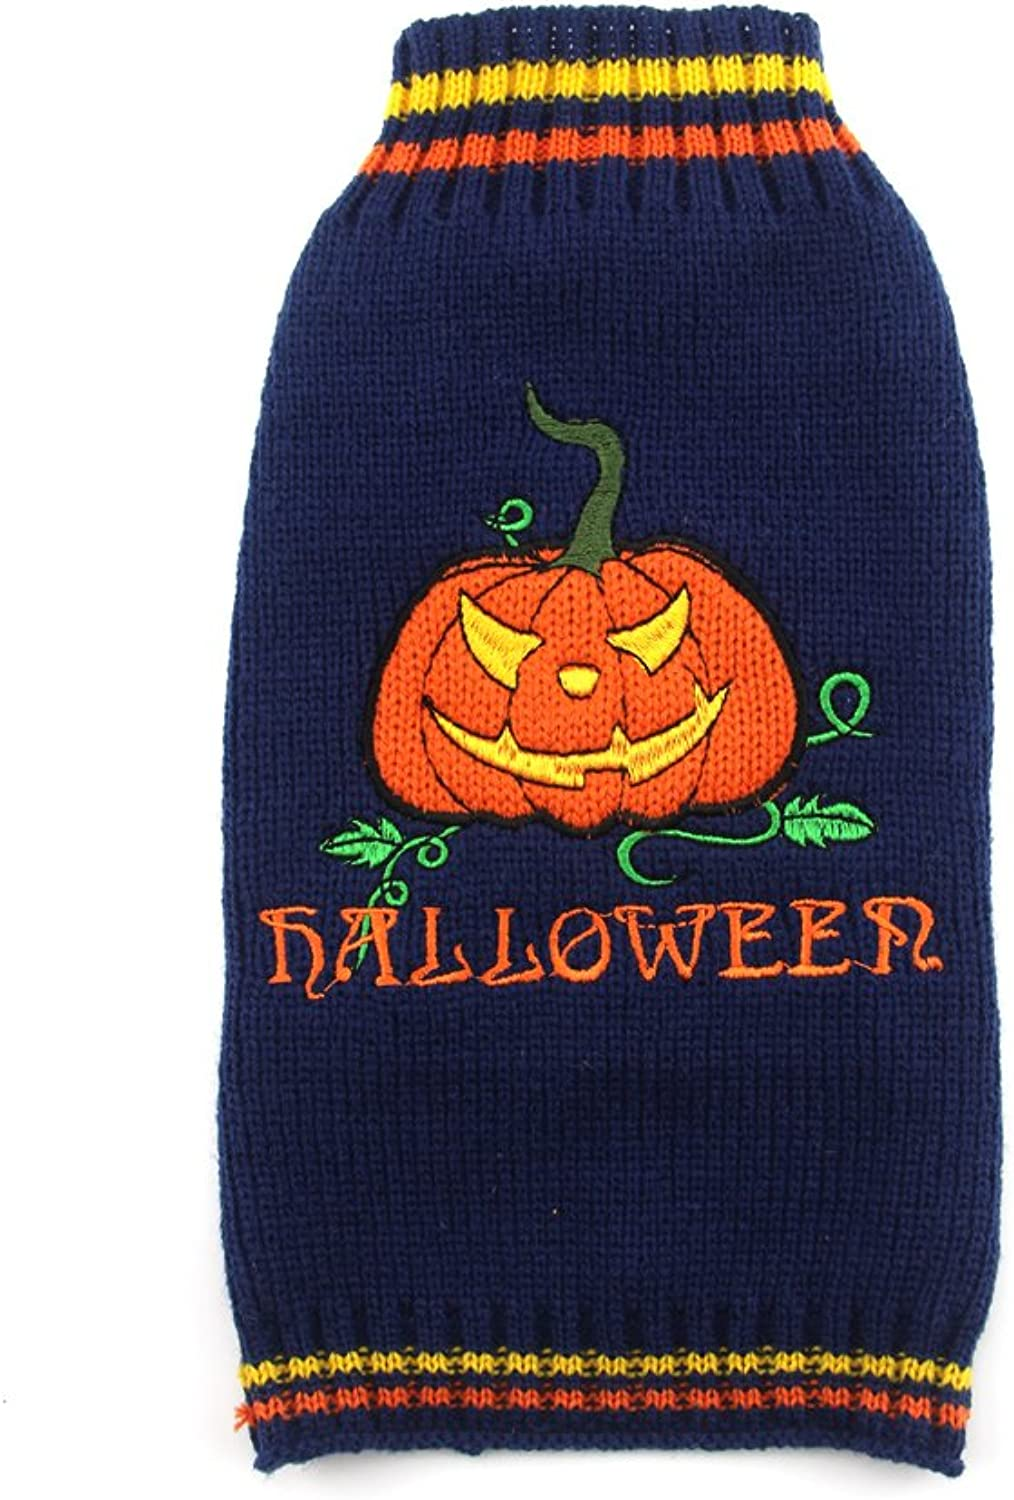 DOGGYZSTYLE Halloween Sweater Costume for Small Medium Large Dogs Navy bluee & orange Pumpkin Knit Pet Outfit (XXS, Pumpkin)